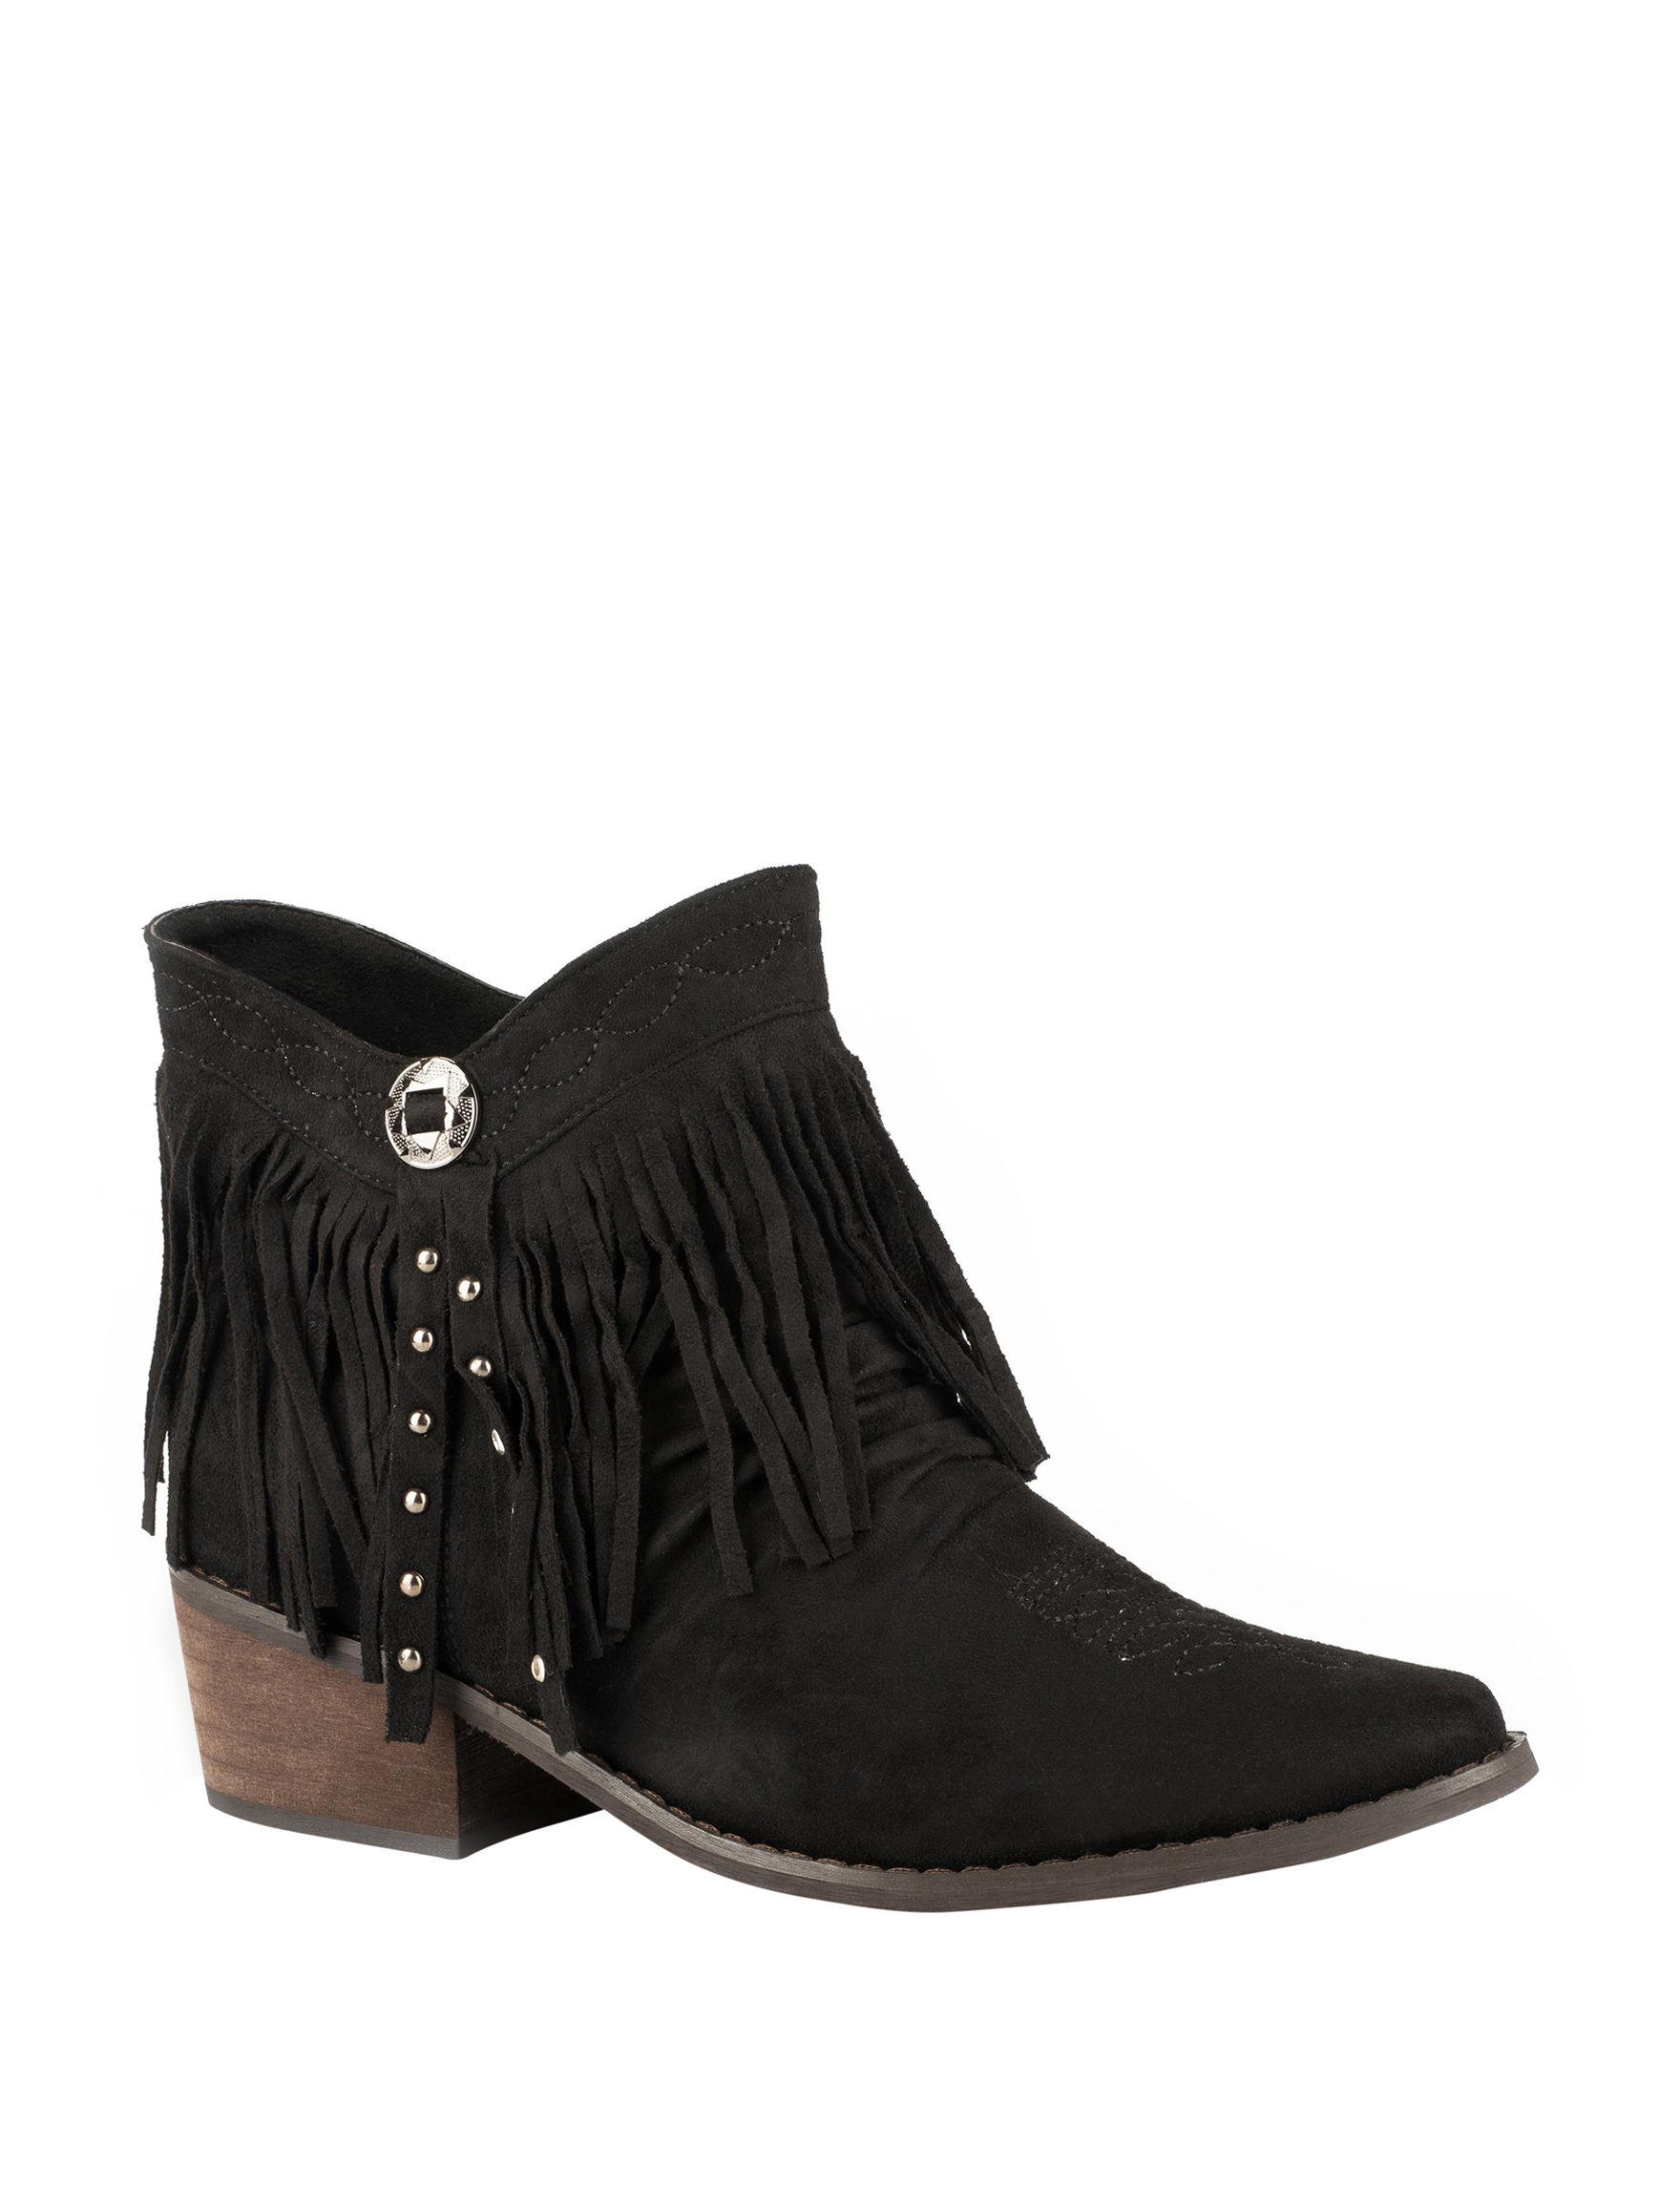 Roper Black Ankle Boots & Booties